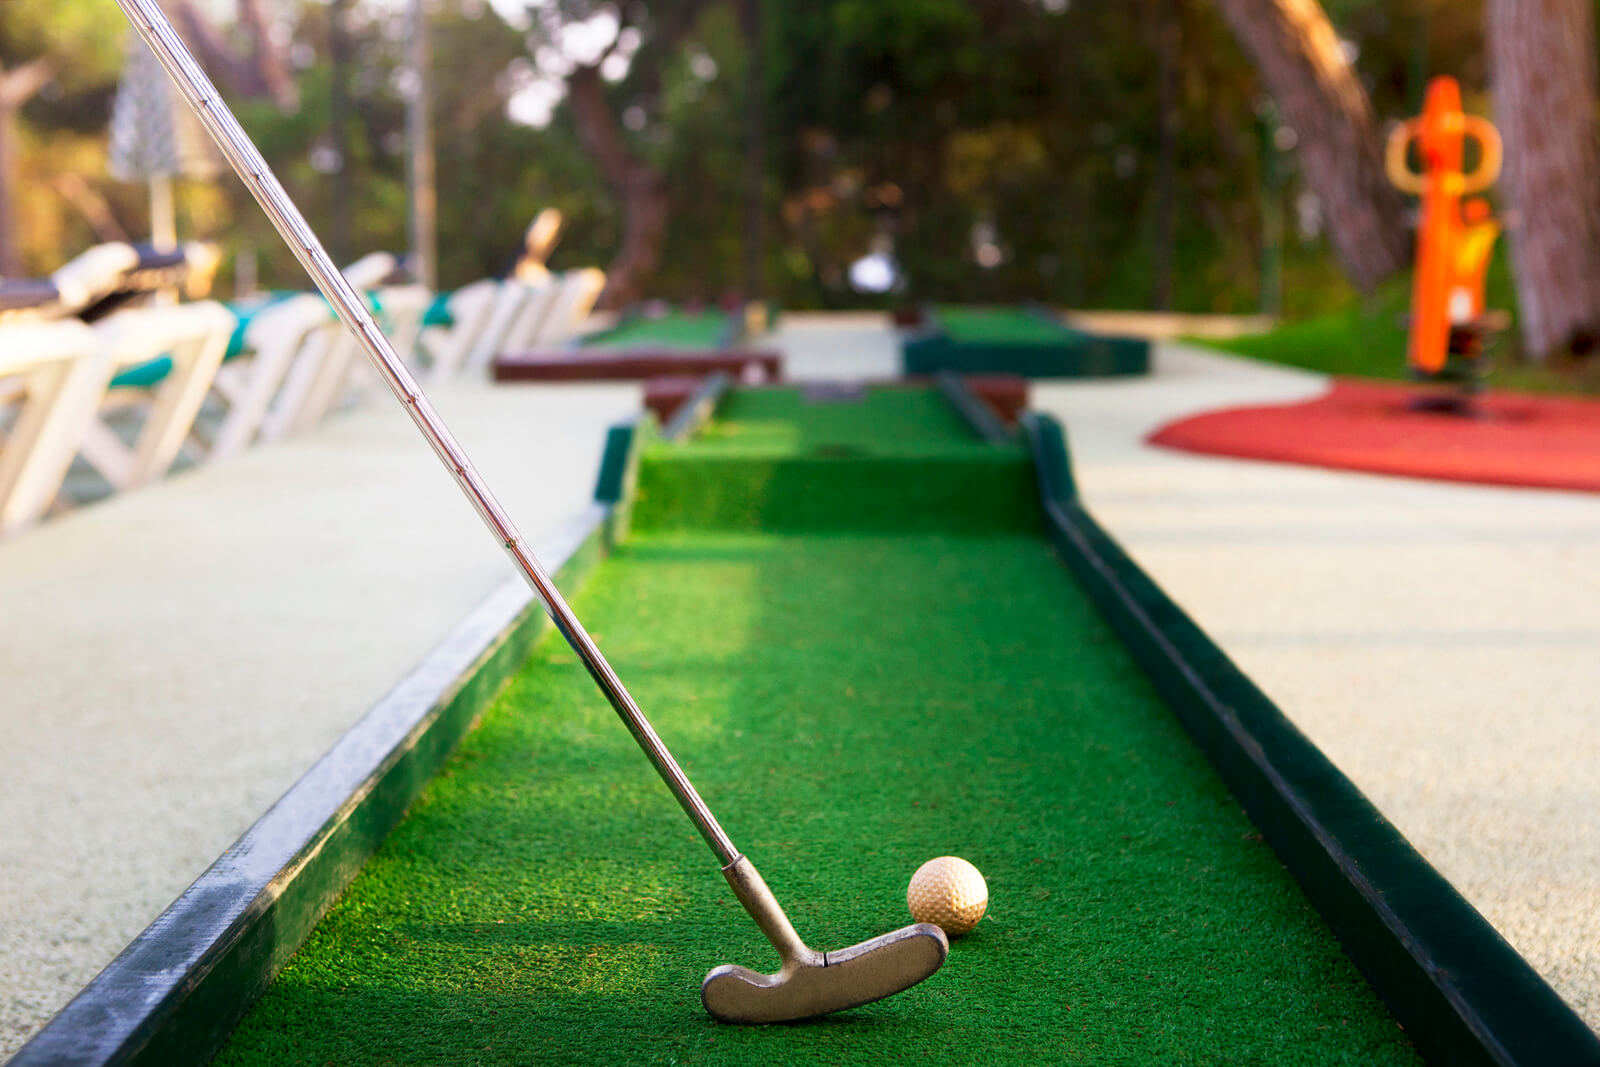 8 Difficult Mini Golf Courses You Have to Play Atleast